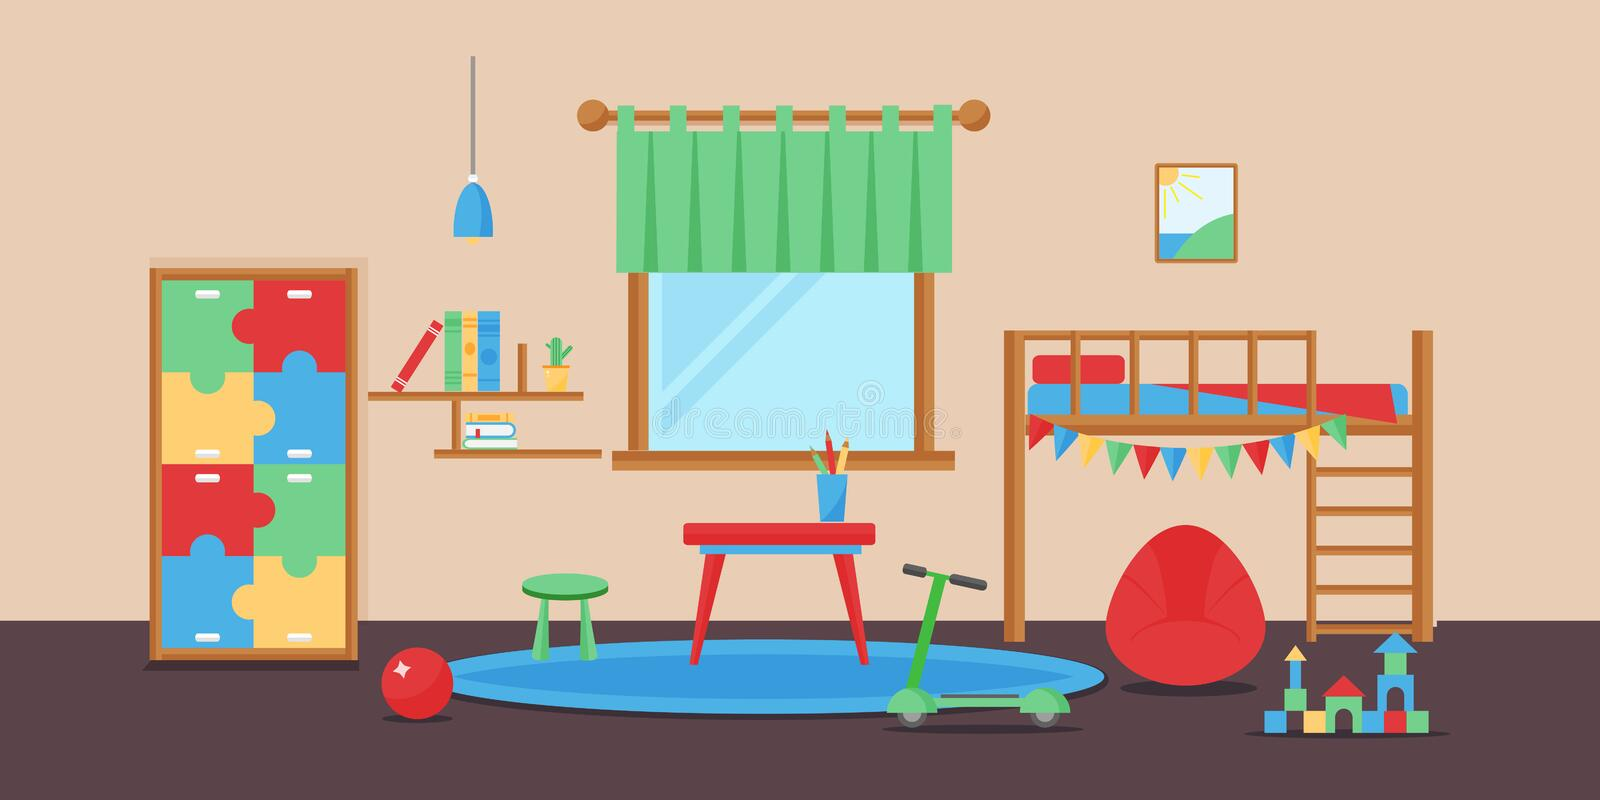 Comfortable cozy baby room decor children bedroom interior with furniture and toys vector. vector illustration